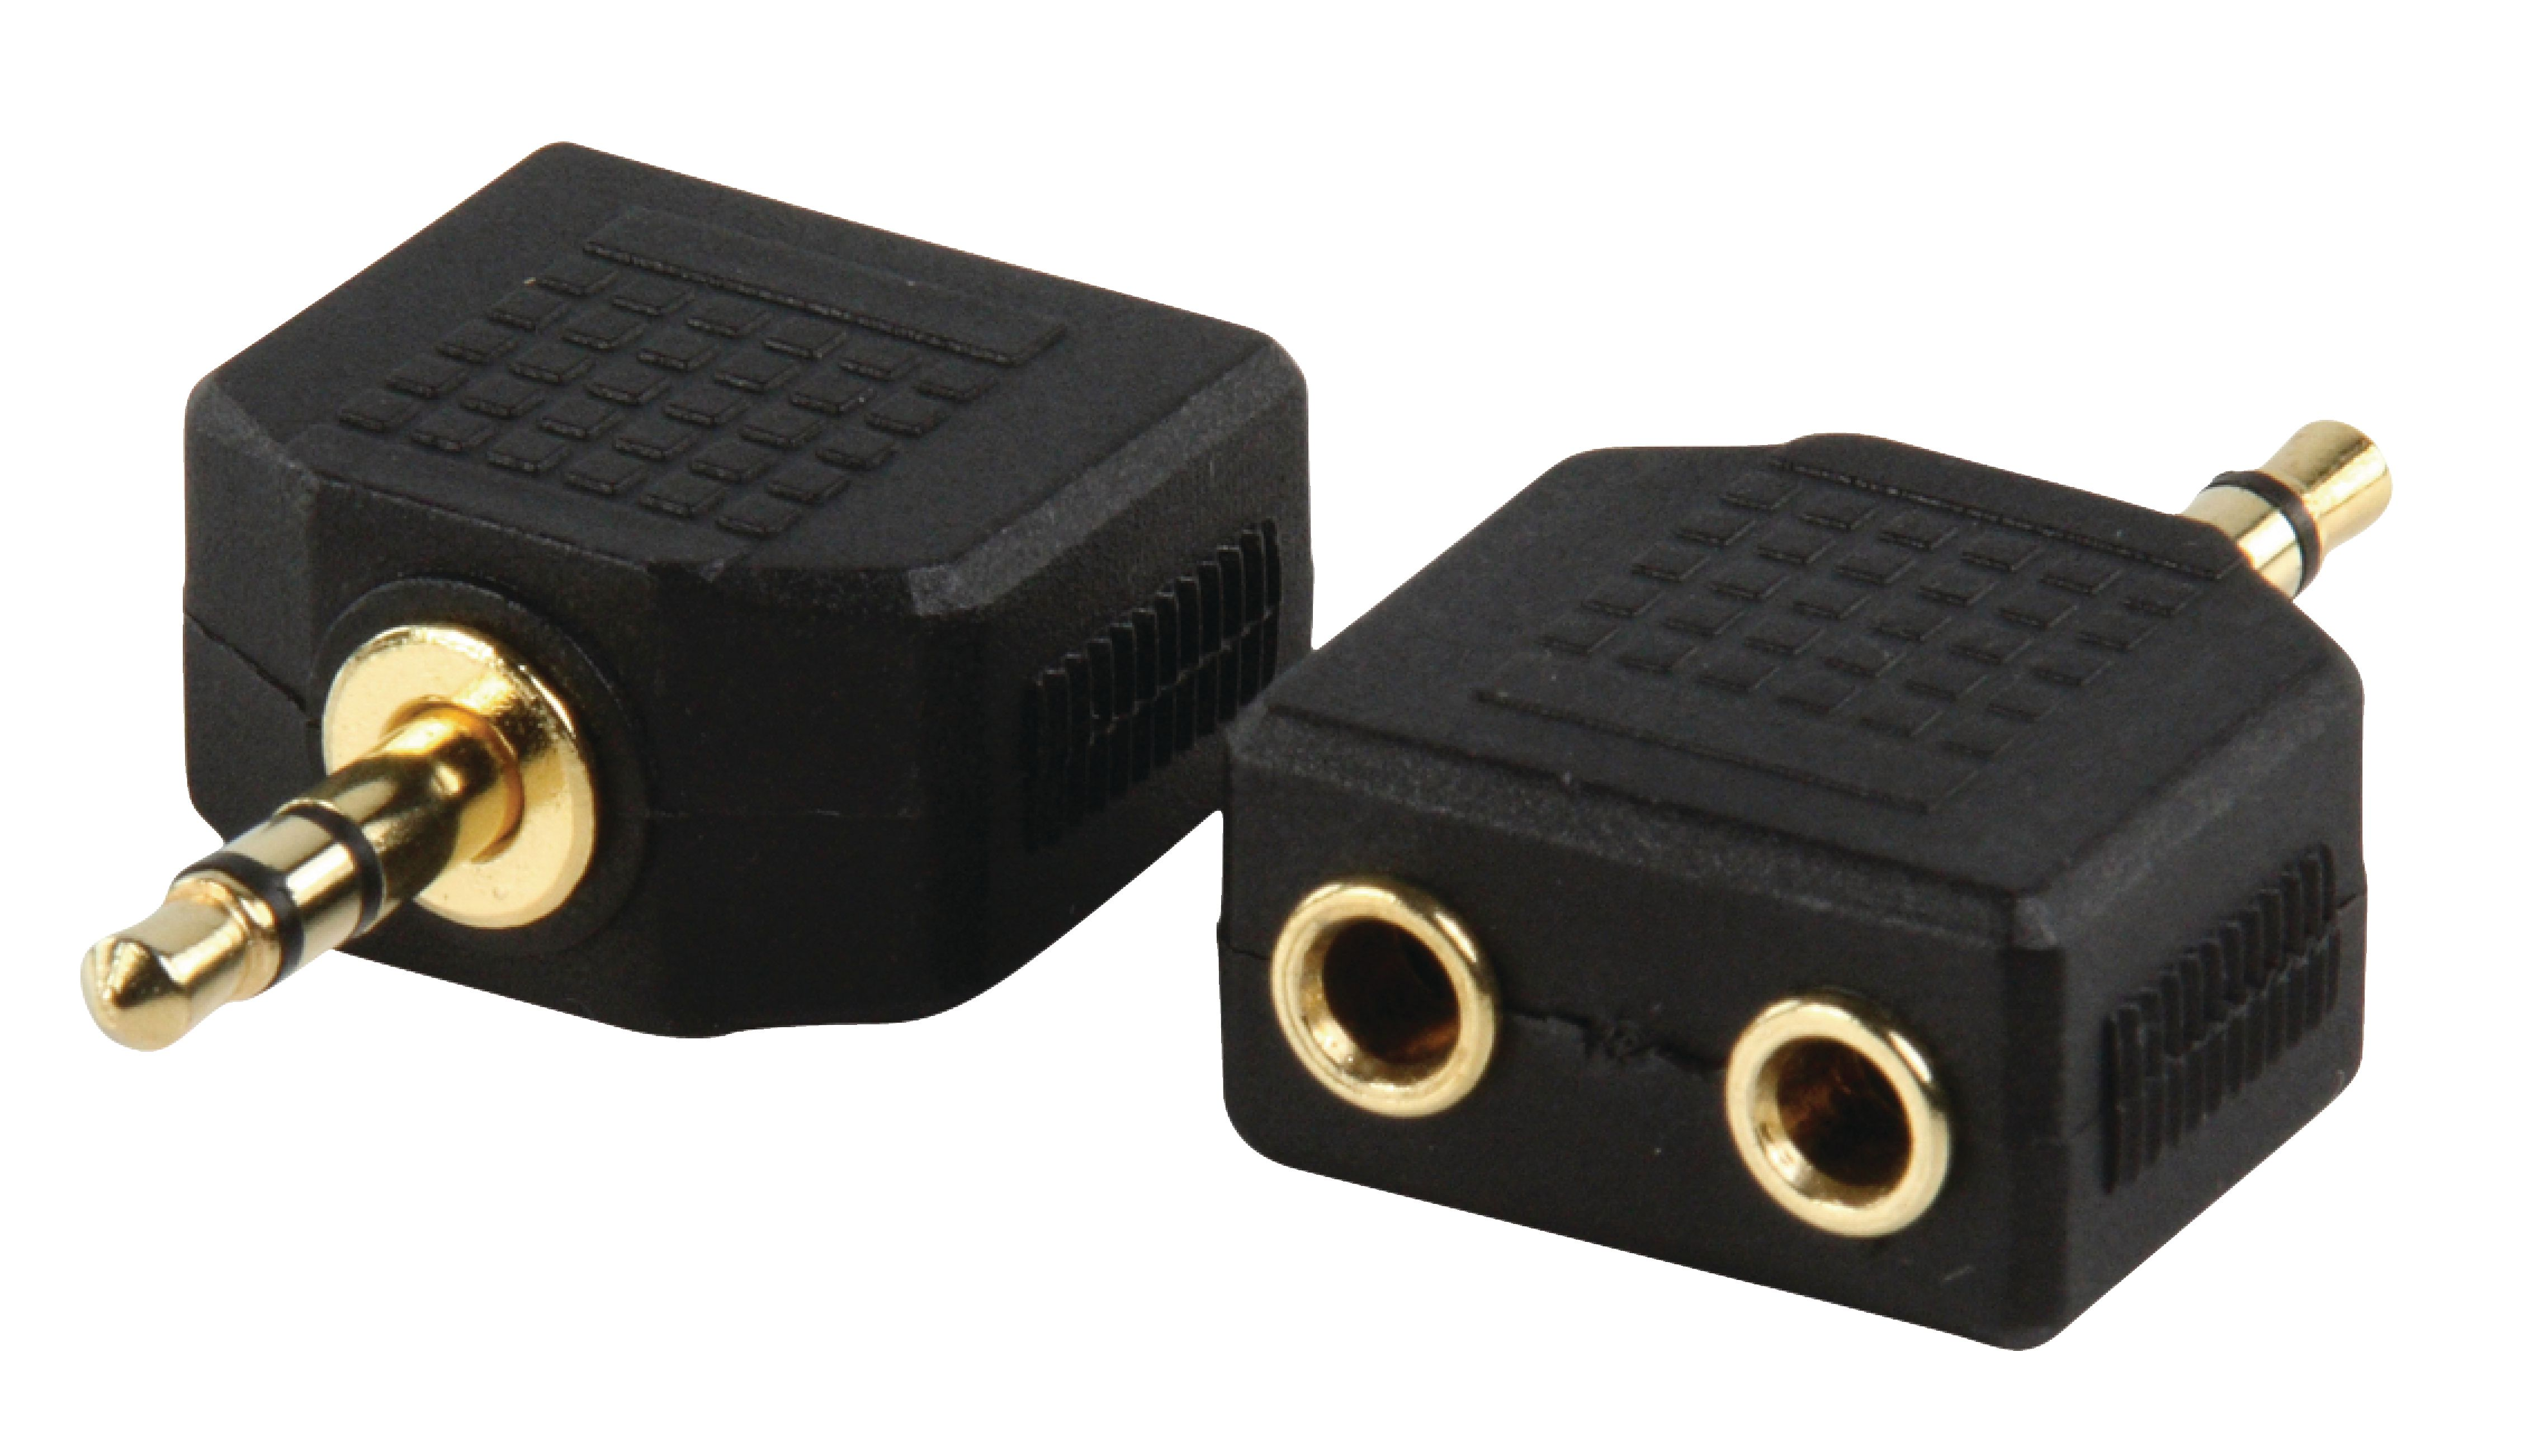 Ac 012gold Valueline Stereo Audio Adapter 3 5 Mm Male 2x 3 5